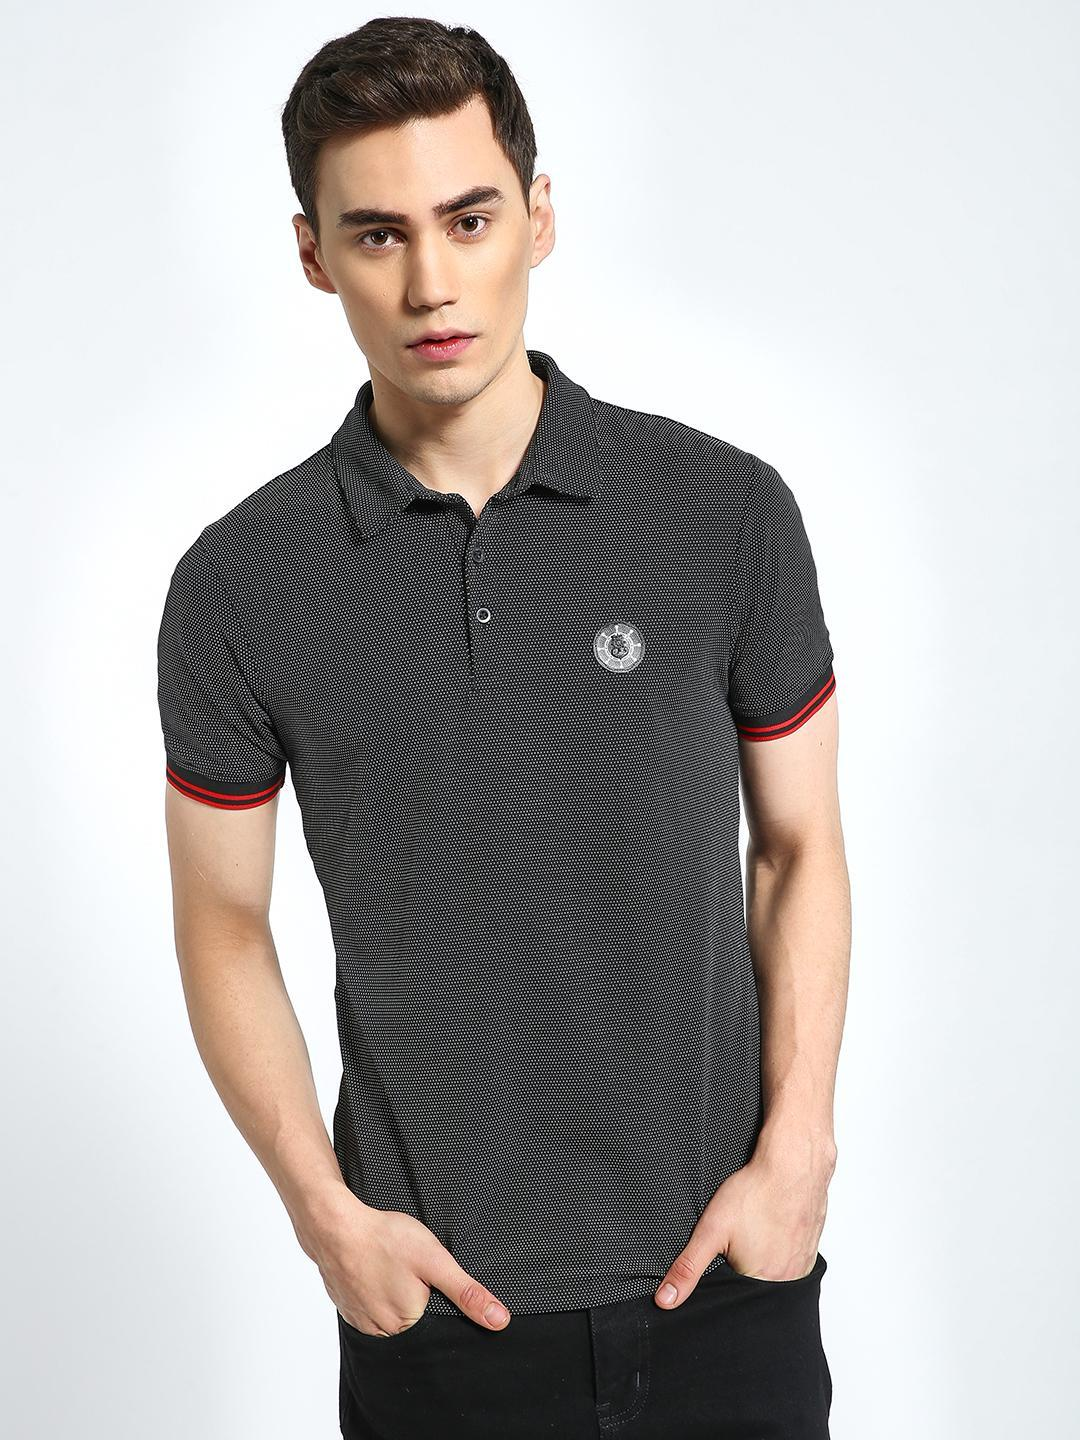 CHELSEA KING Charcoal Ditsy Textured Badge Polo Shirt 1